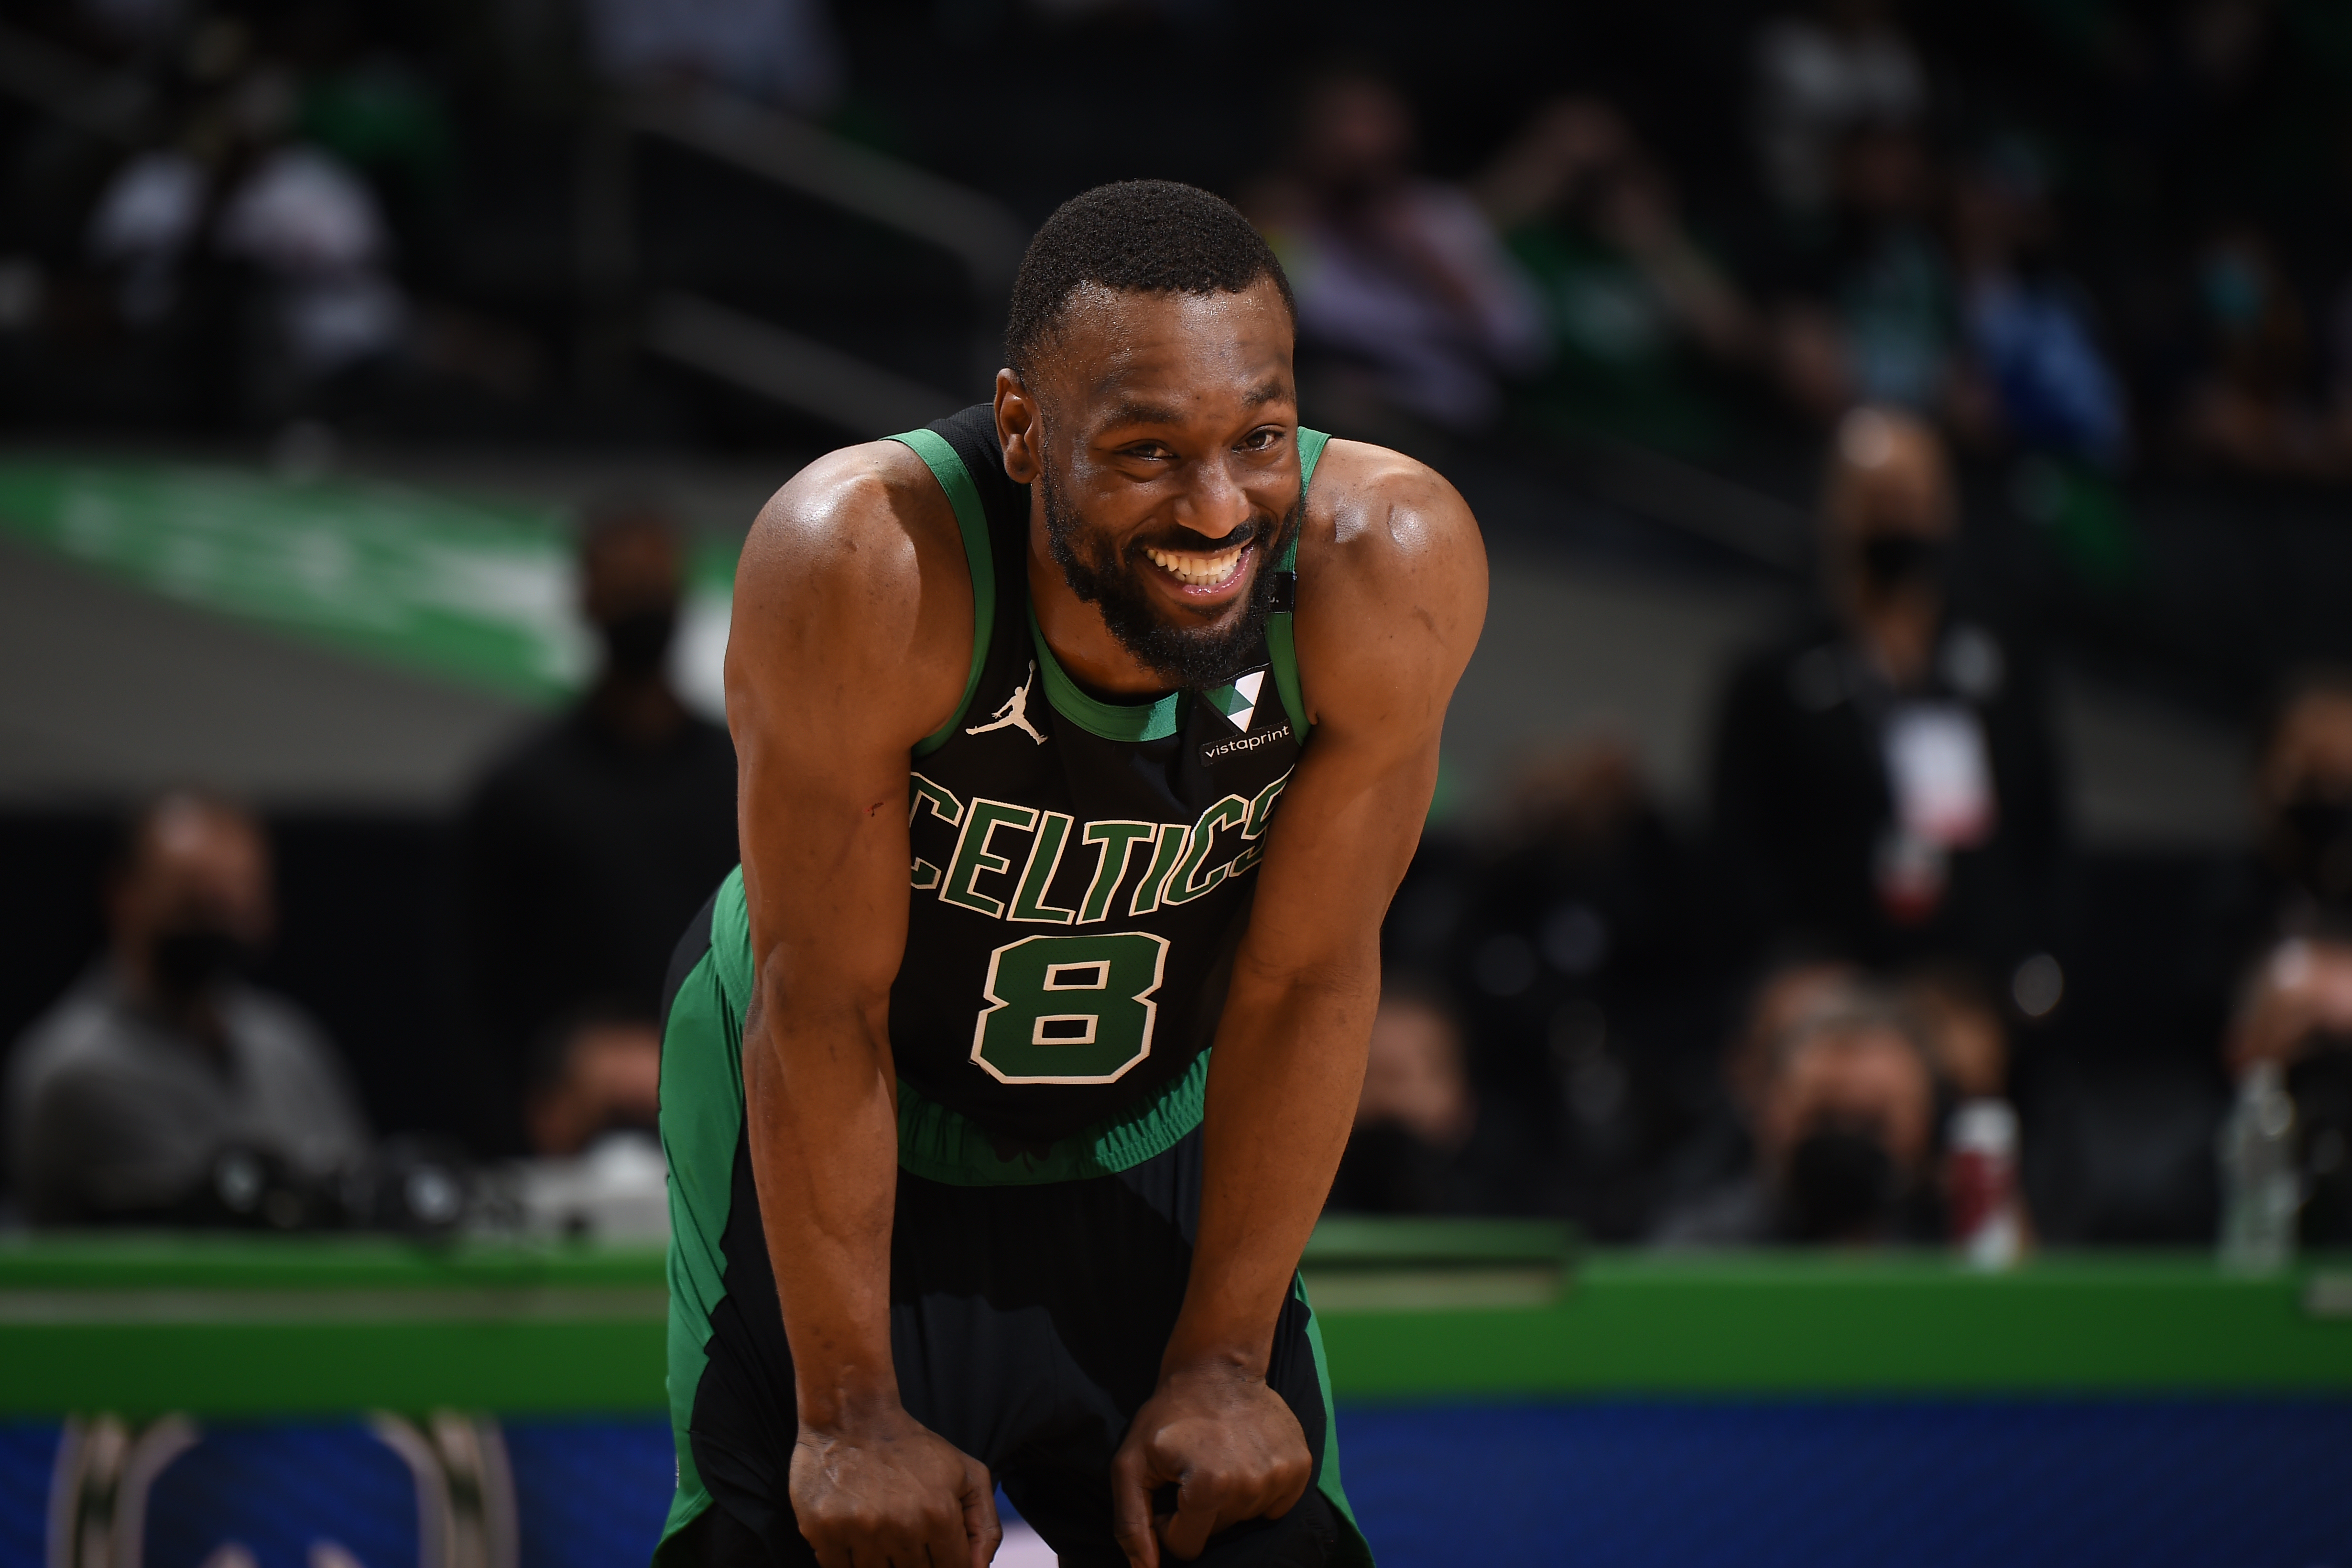 Kemba Walker of the Boston Celtics smiles during the game against the Brooklyn Nets during Round 1, Game 3 of the 2021 NBA Playoffs on May 28, 2021 at the TD Garden in Boston, Massachusetts.